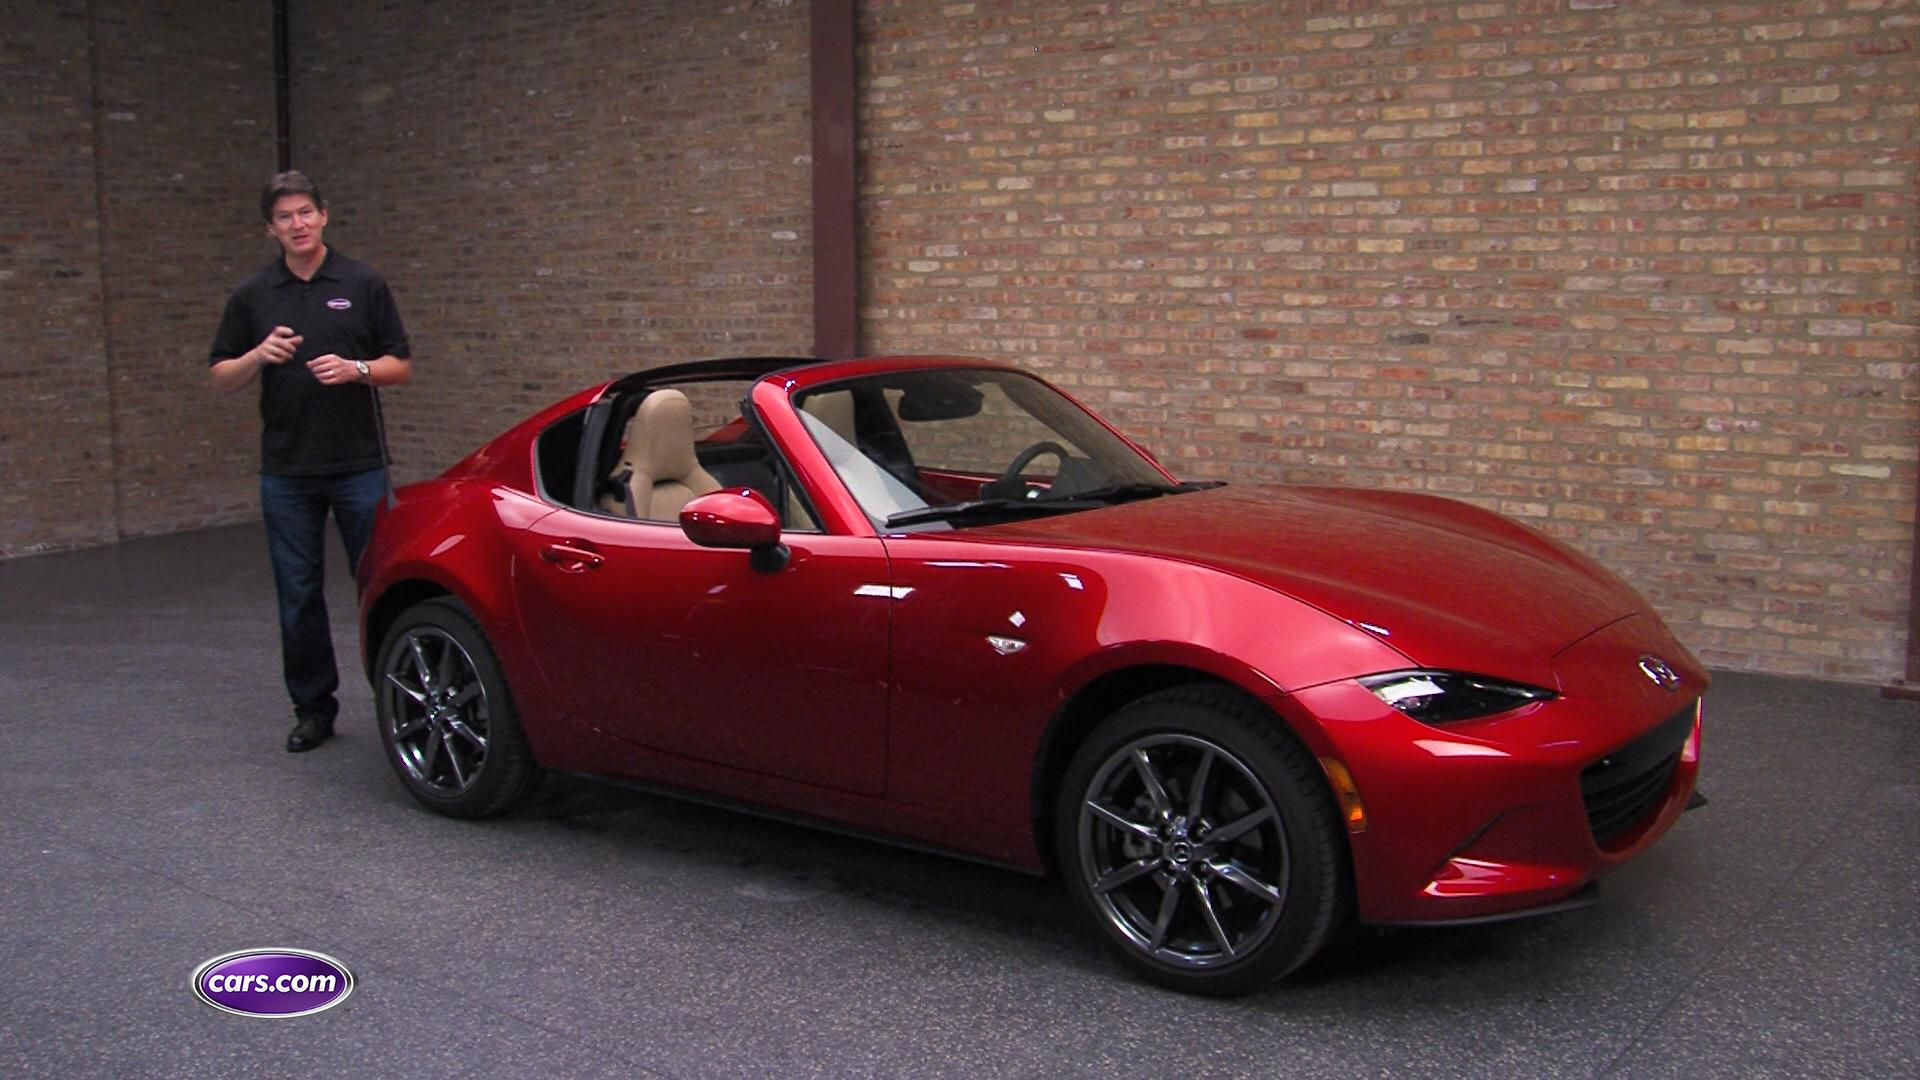 2017 Mazda MX-5 Miata RF Expert Reviews, Specs and Photos | Cars.com